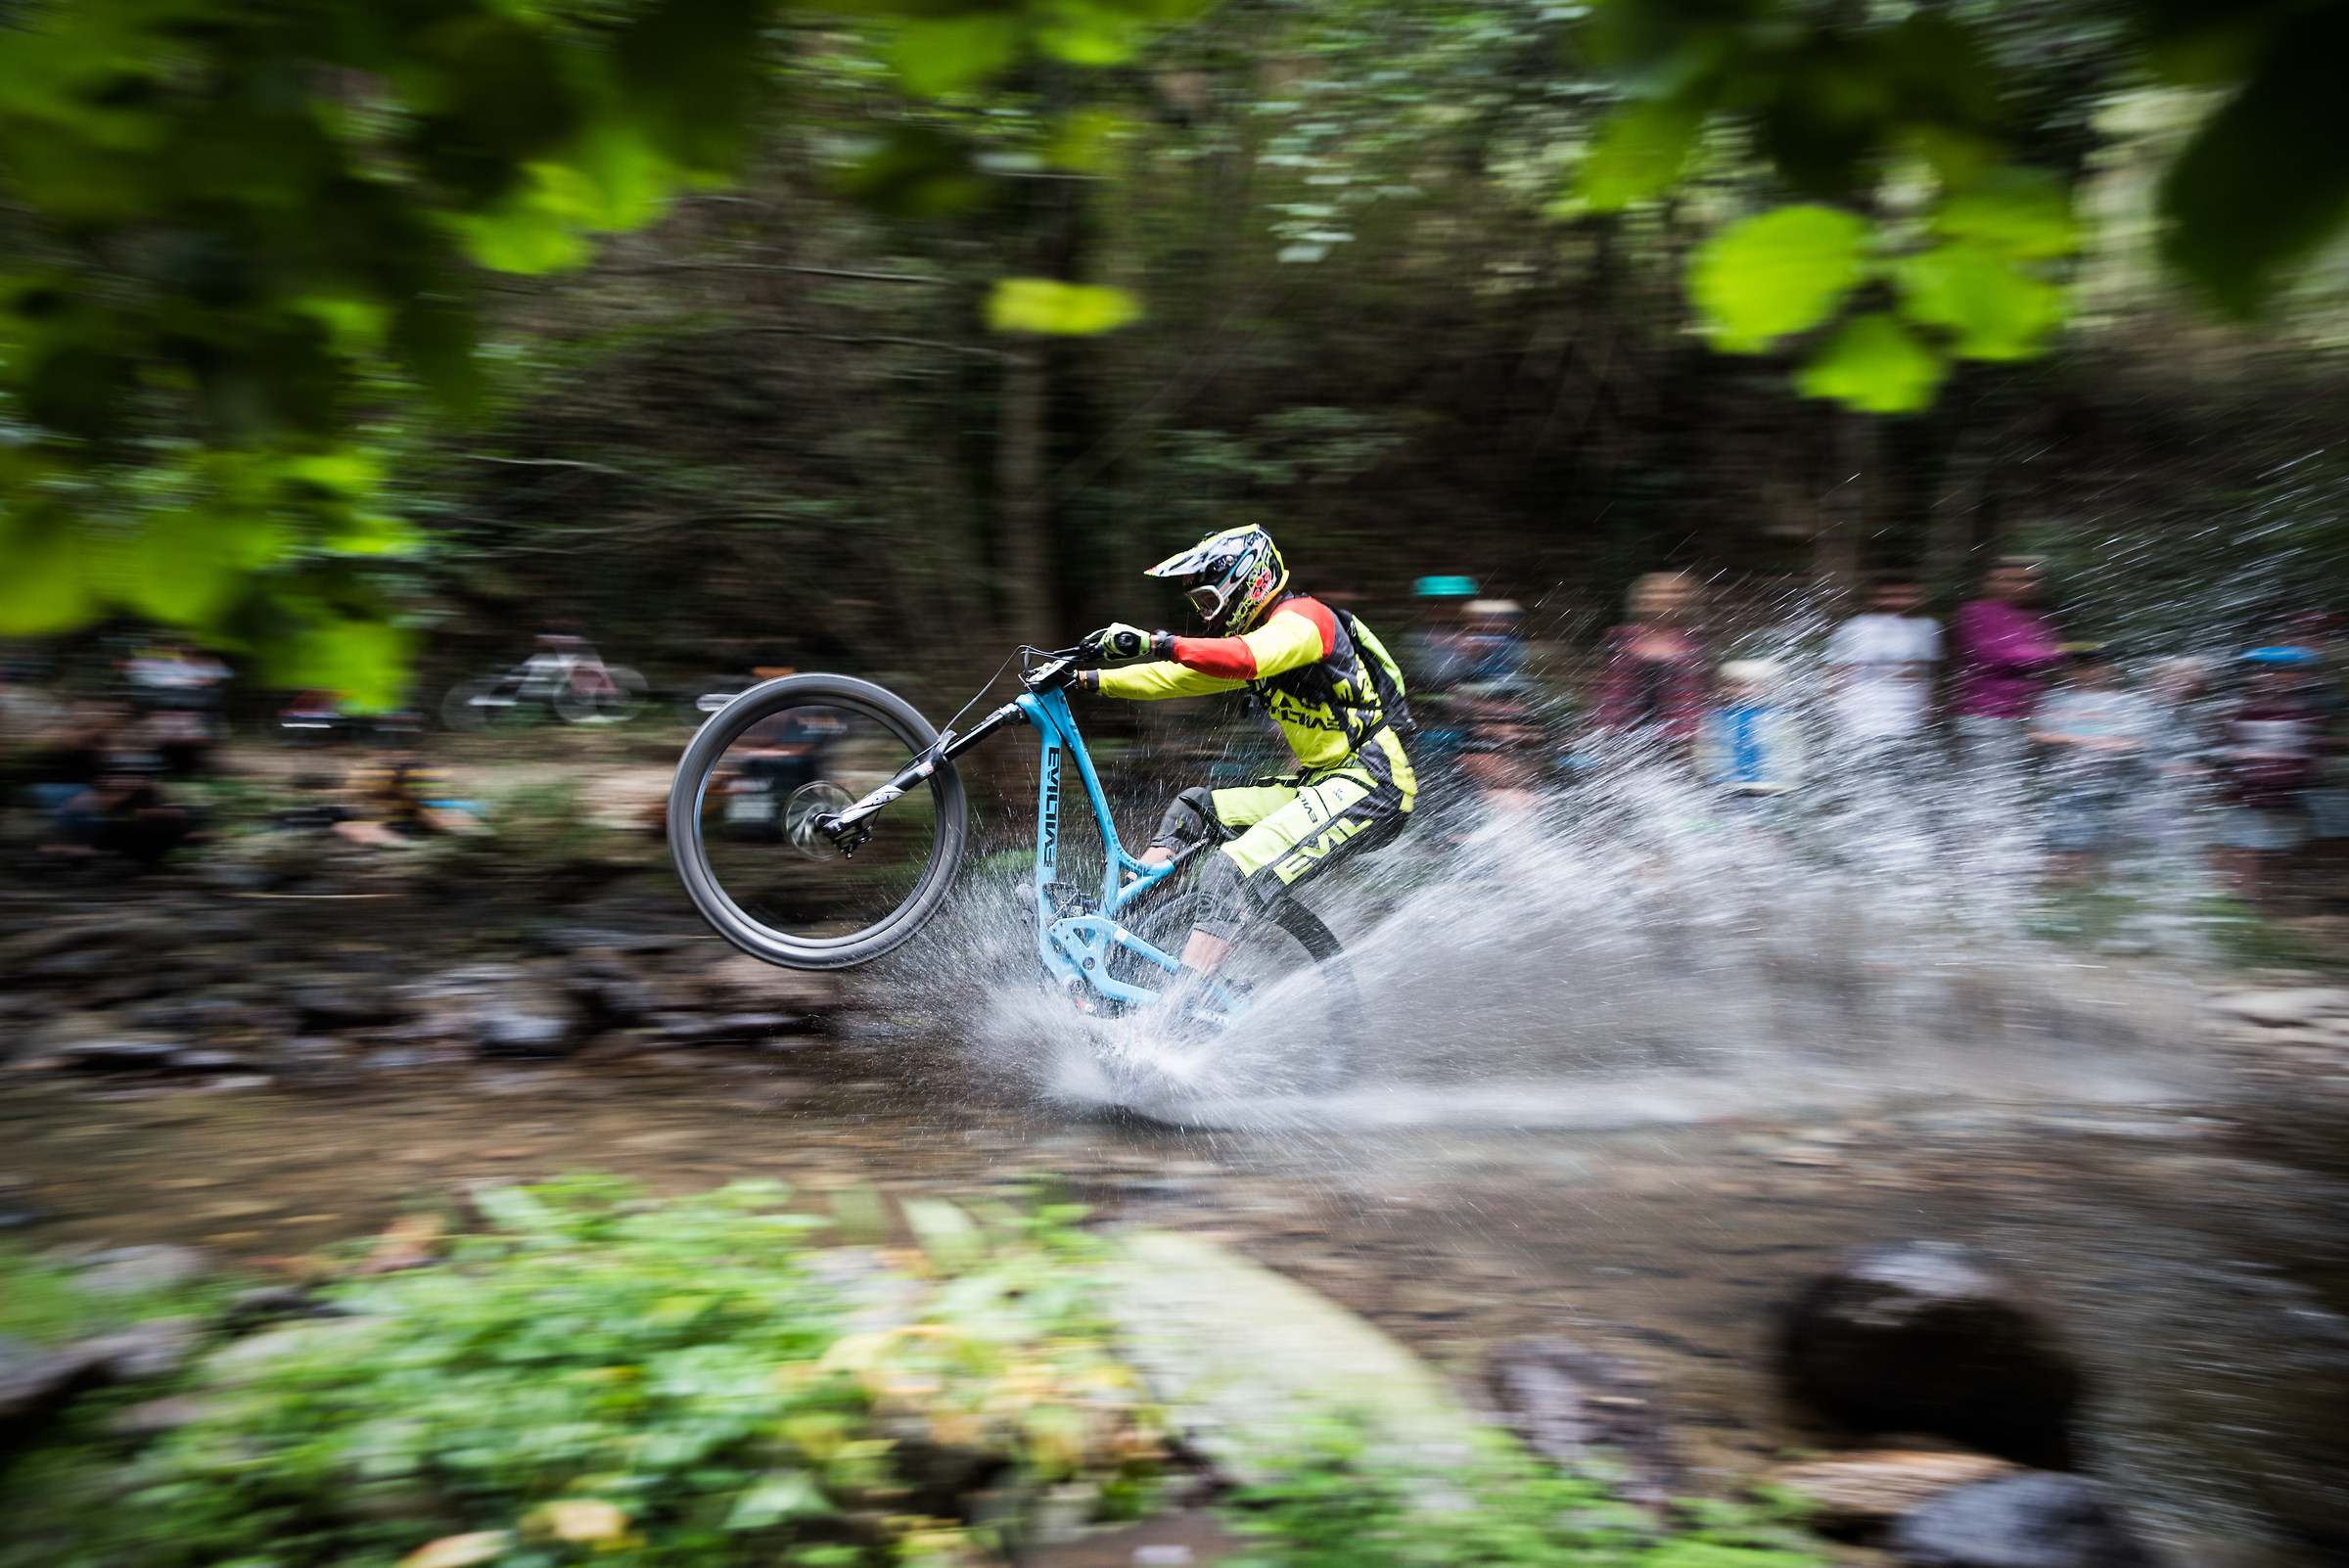 Toni Ferreiro in Finale Ligure Enduro World Series 2016...